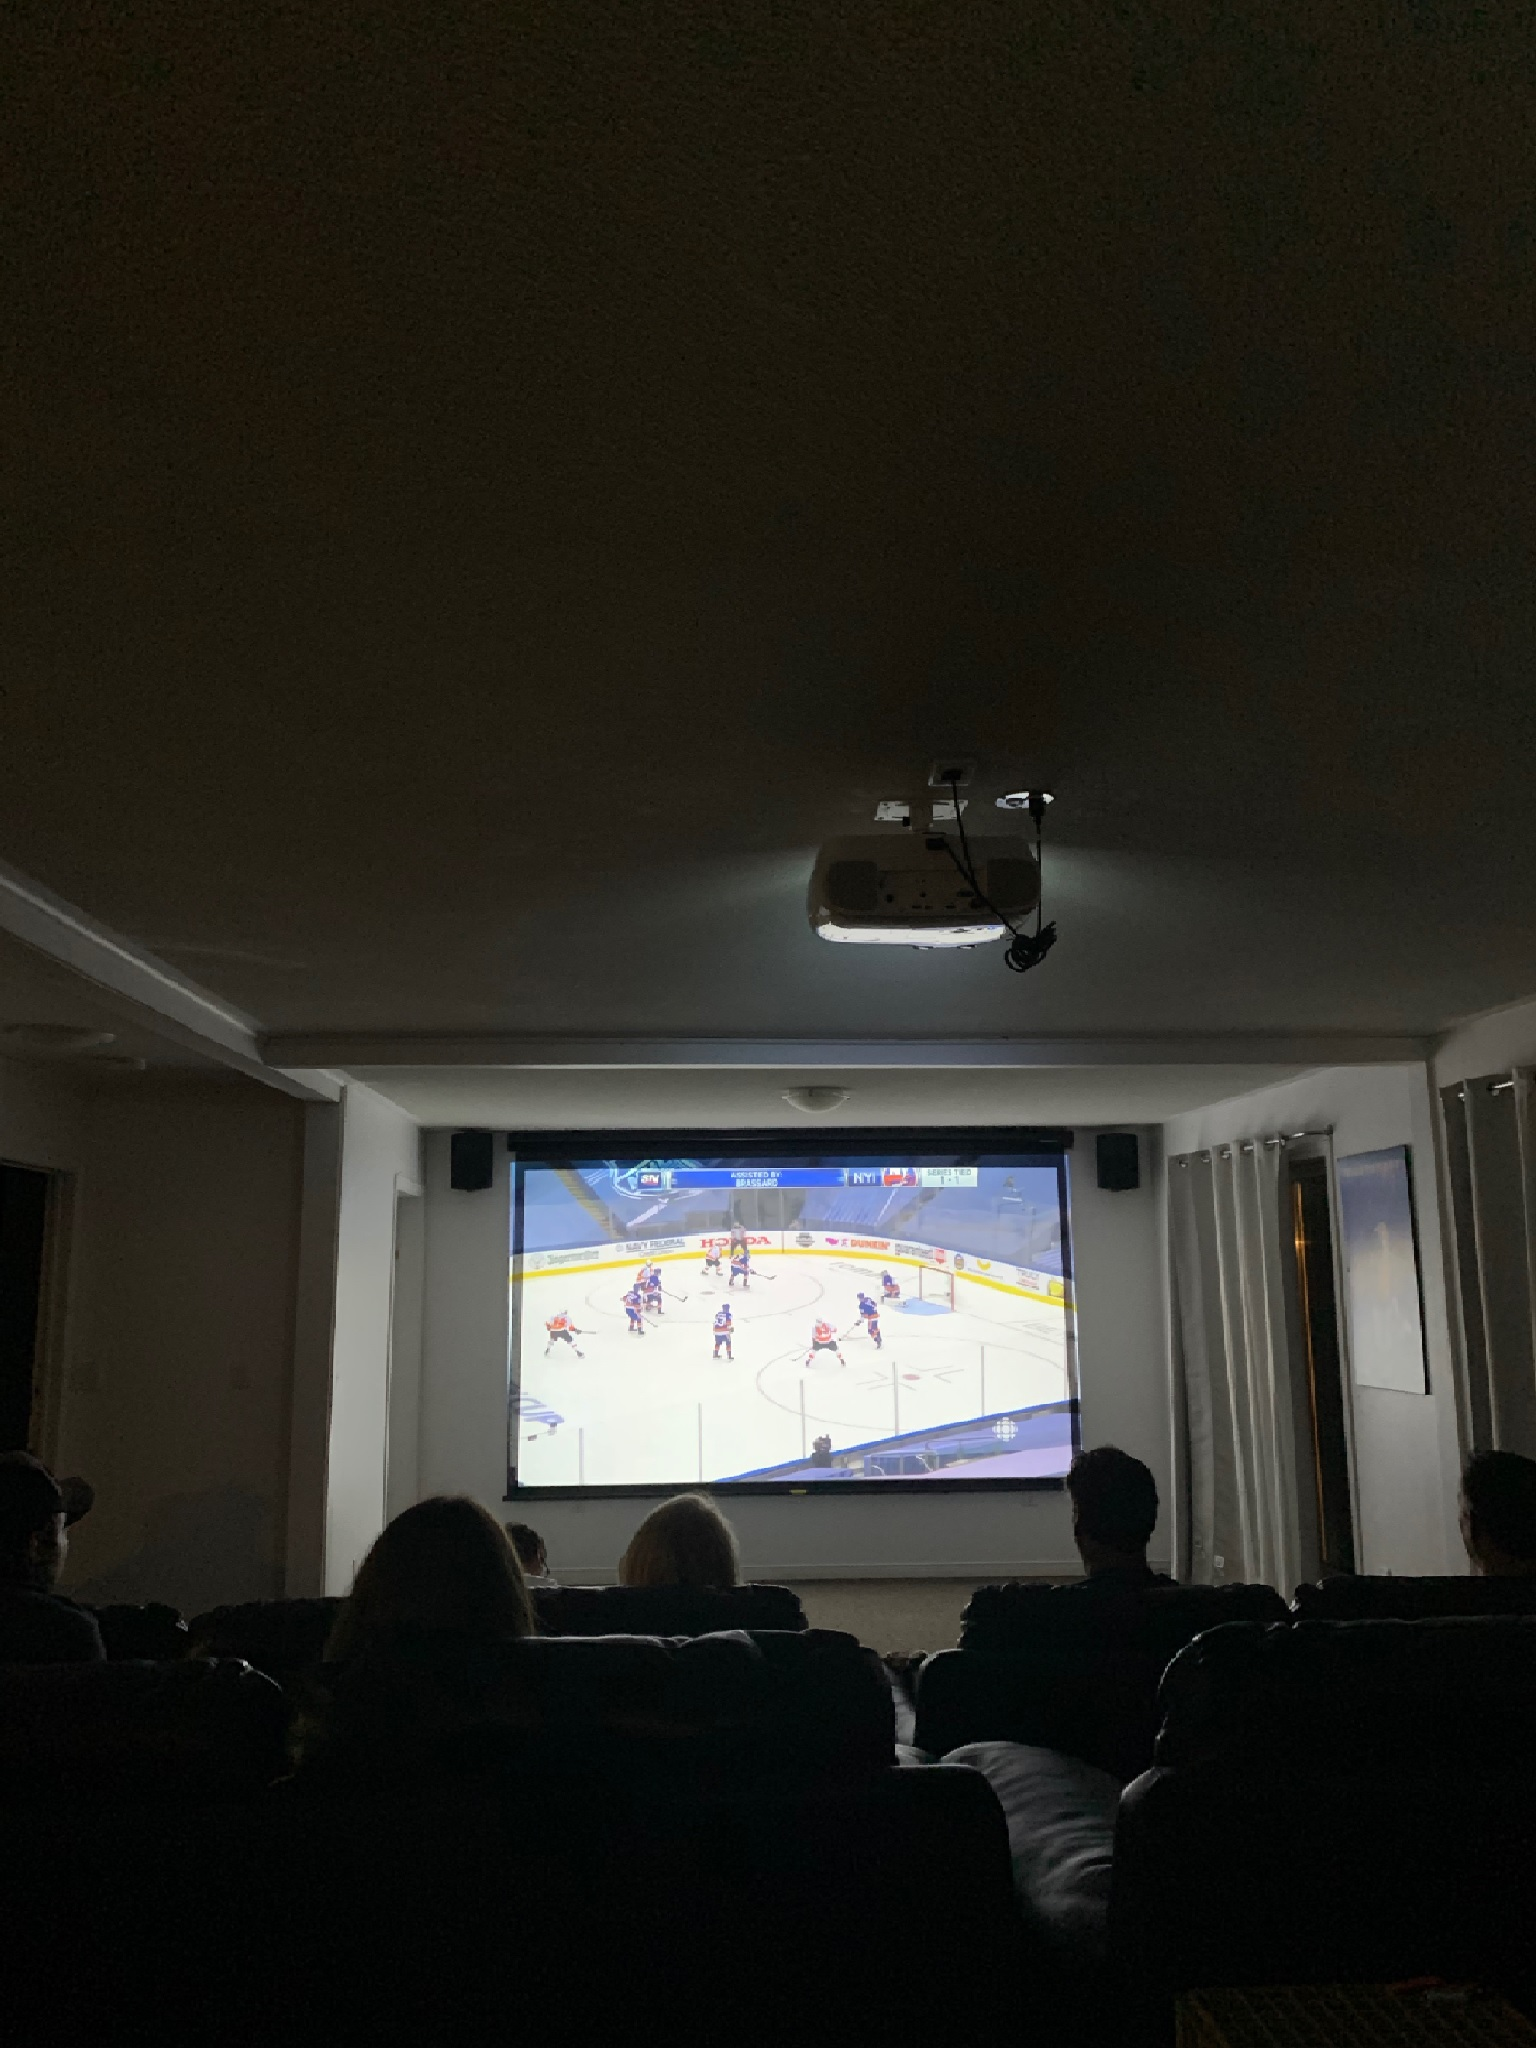 camp-hockey-haven-lounge